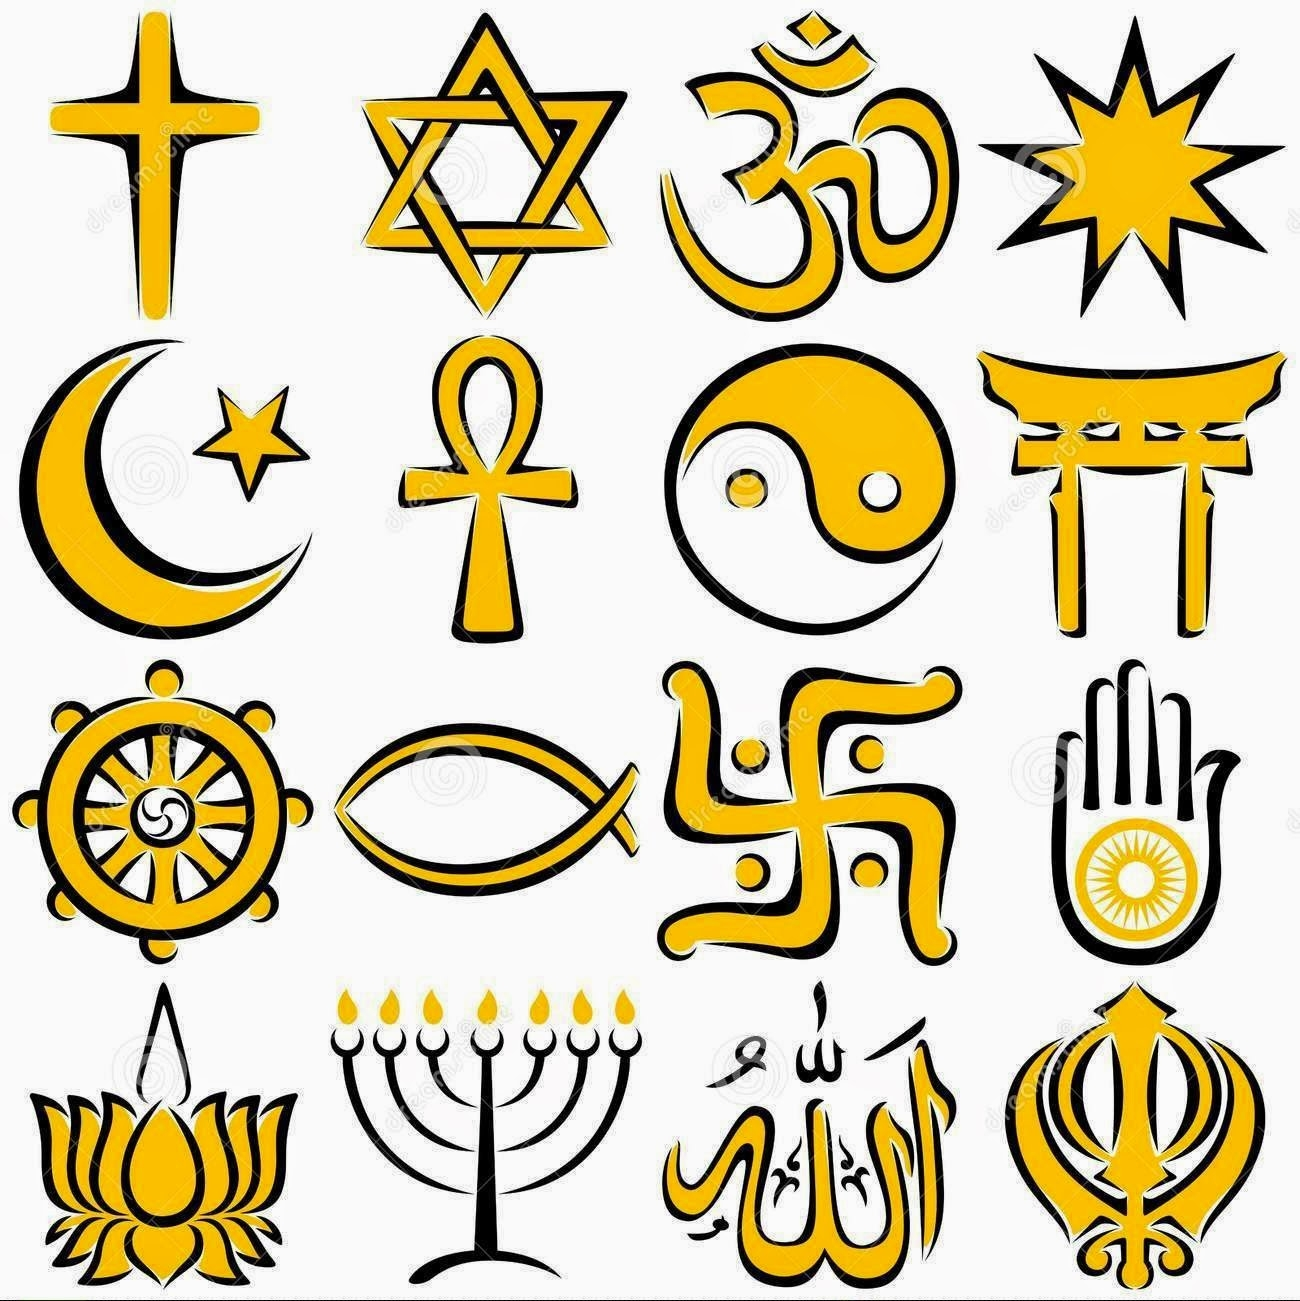 Freedom Of Religion Clipart